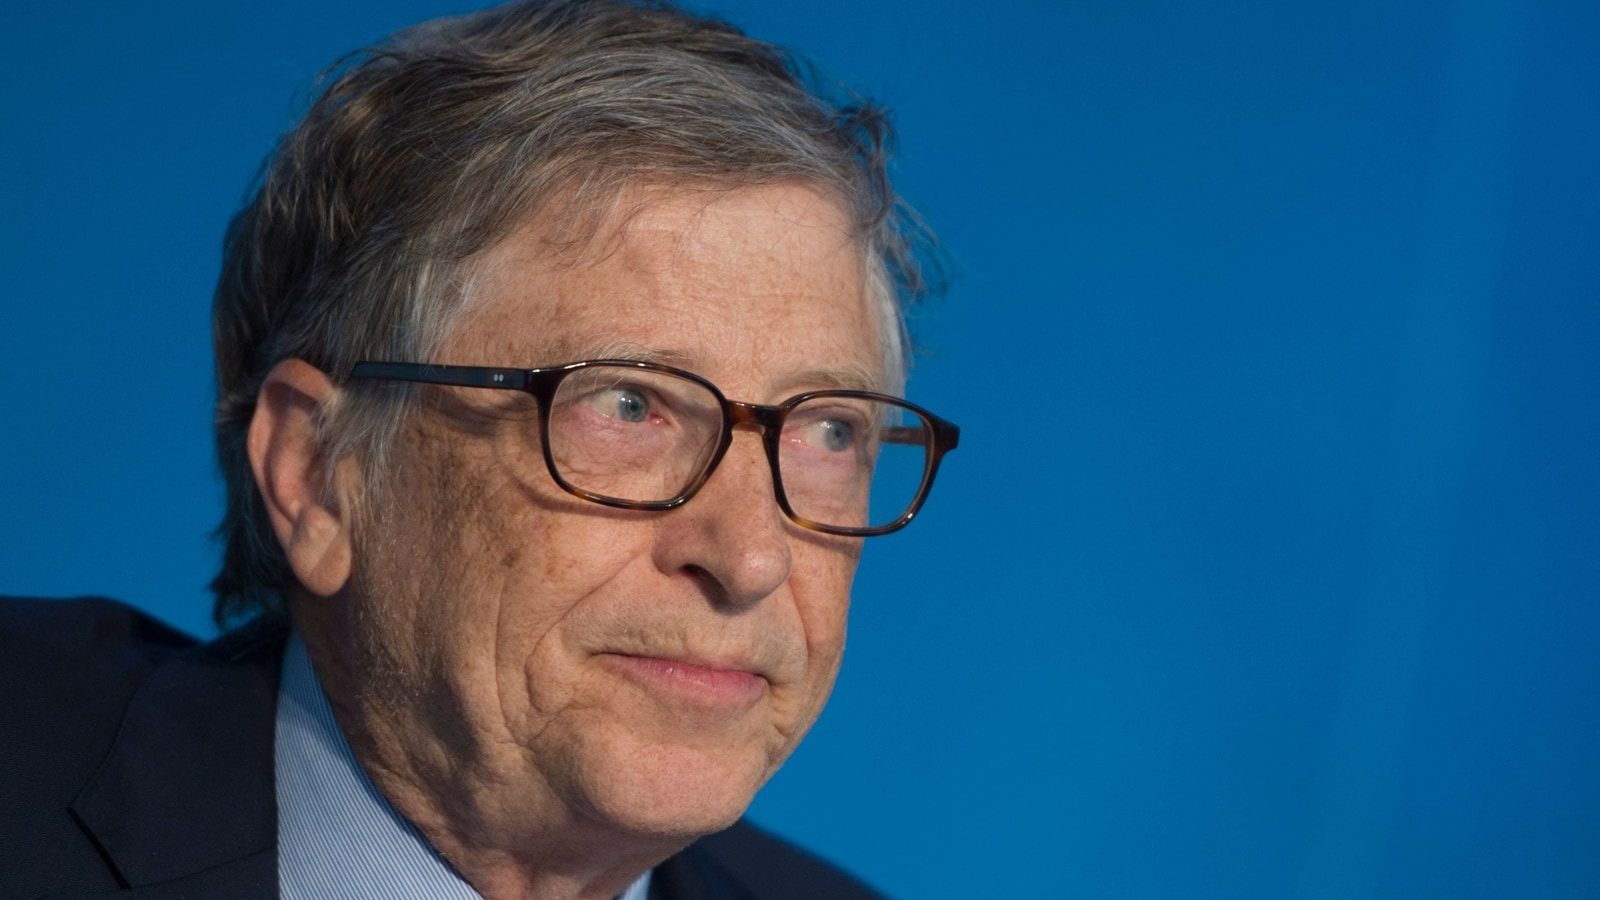 'It was a huge mistake': Bill Gates regrets meeting convicted sex offender Epstein - Hindustan Times